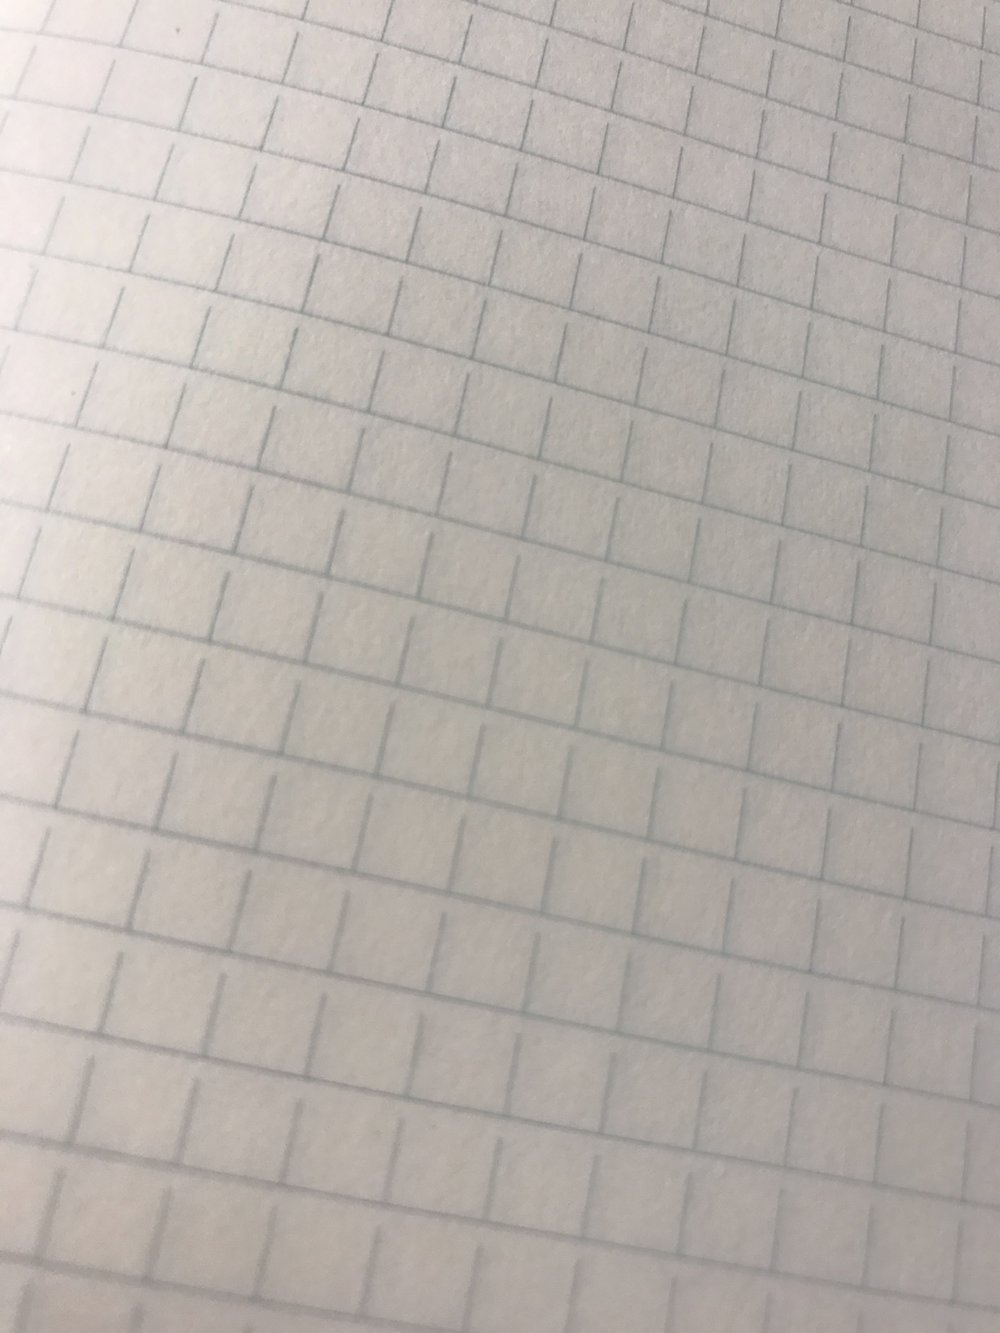 I particularly like the unusual open grid of the Midori MD paper. Note how the vertical lines leave gaps underneath each horizontal line. The result is a gestalt impression of openness and a slight horizontal bias that invites writing (as opposed to diagramming on regular full-grid graph paper).